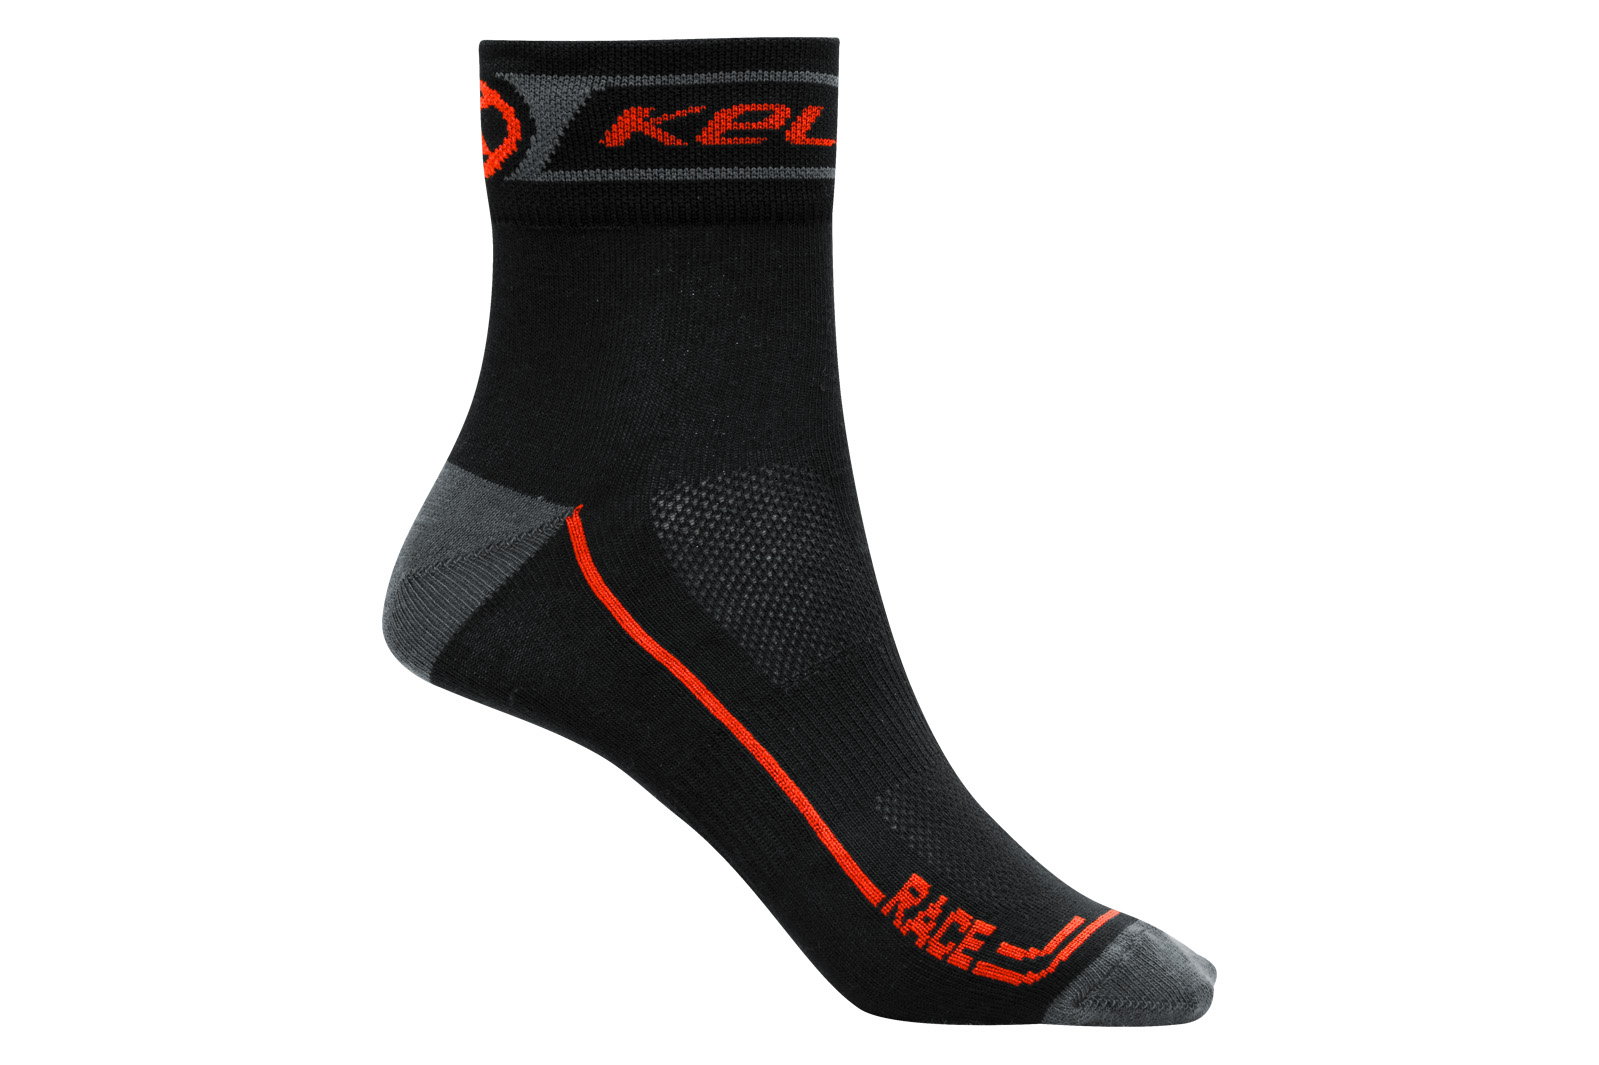 Socken KELLYS PRO Race red 43-47 - Socken KELLYS PRO Race red 43-47